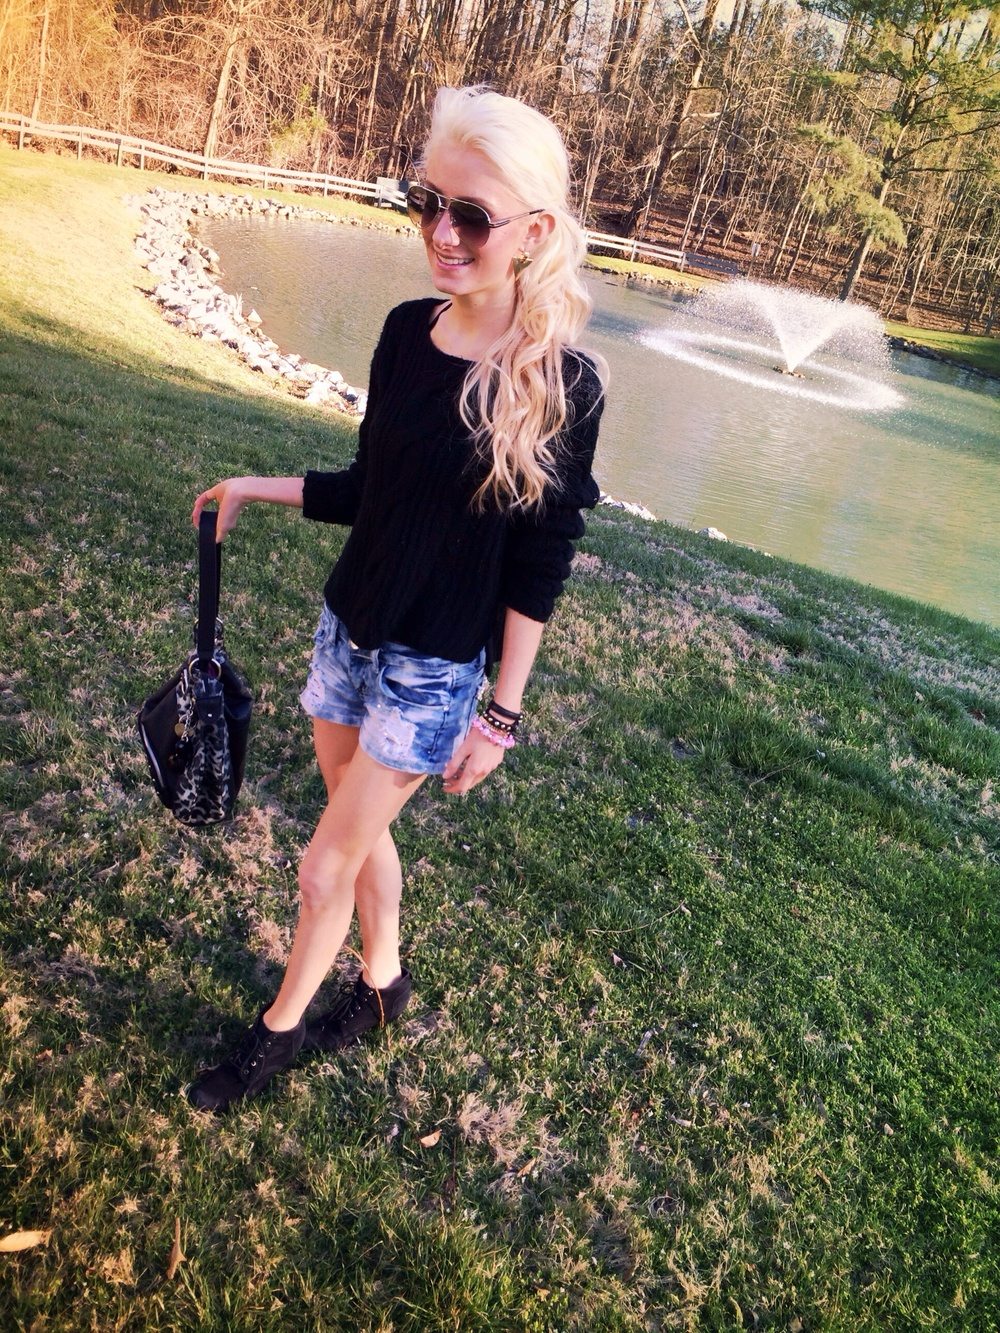 fashion and lifestyle blogger Jessica Linn on a trip in Williamsburg VA. Jessica is wearing a black knit sweater from Forever21 and denim shorts from Papaya, black booties, and a Cathy Van Zealand purse.